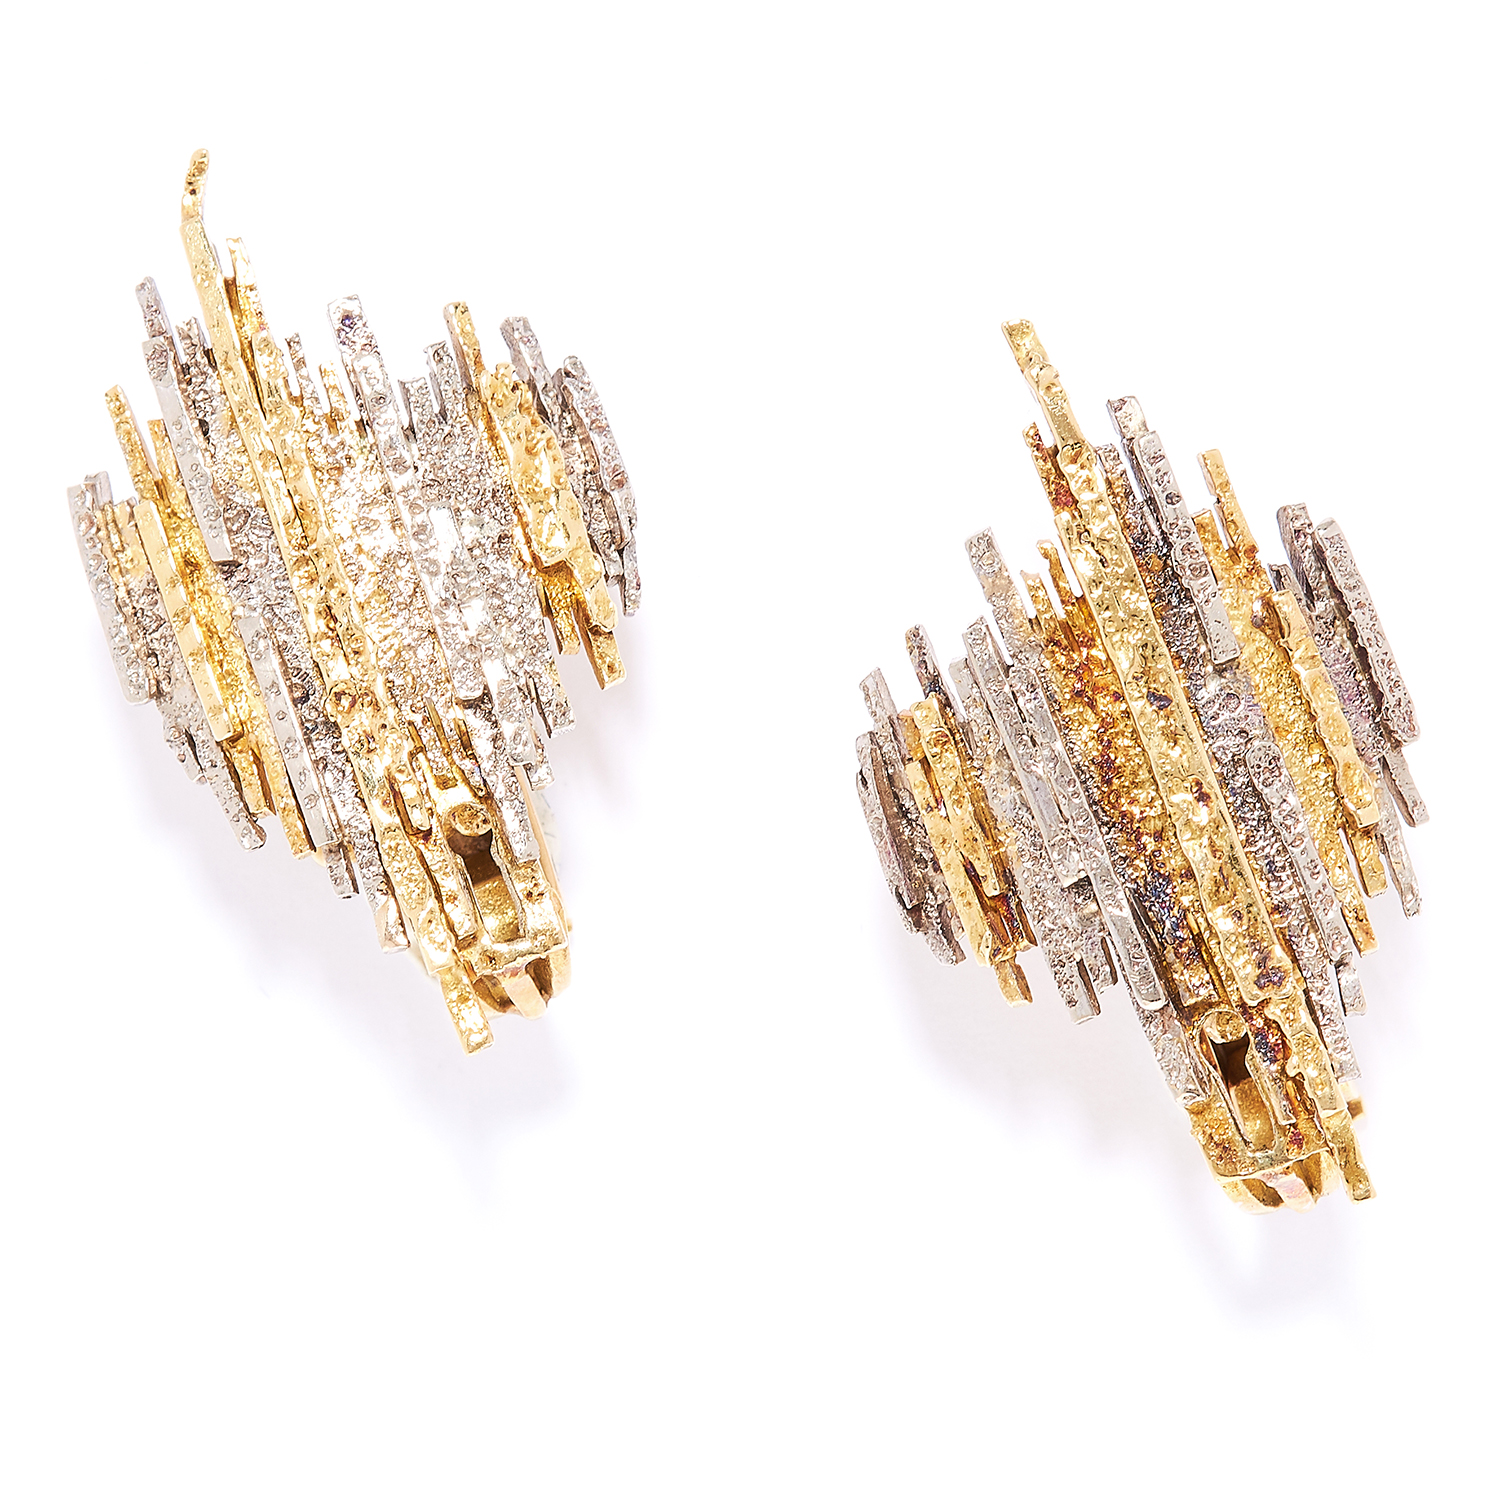 TWO TONE GOLD DAY-TO-NIGHT EARRINGS, CHARLES DE TEMPLE, 1979 in 18ct yellow gold, each comprising of - Bild 2 aus 3